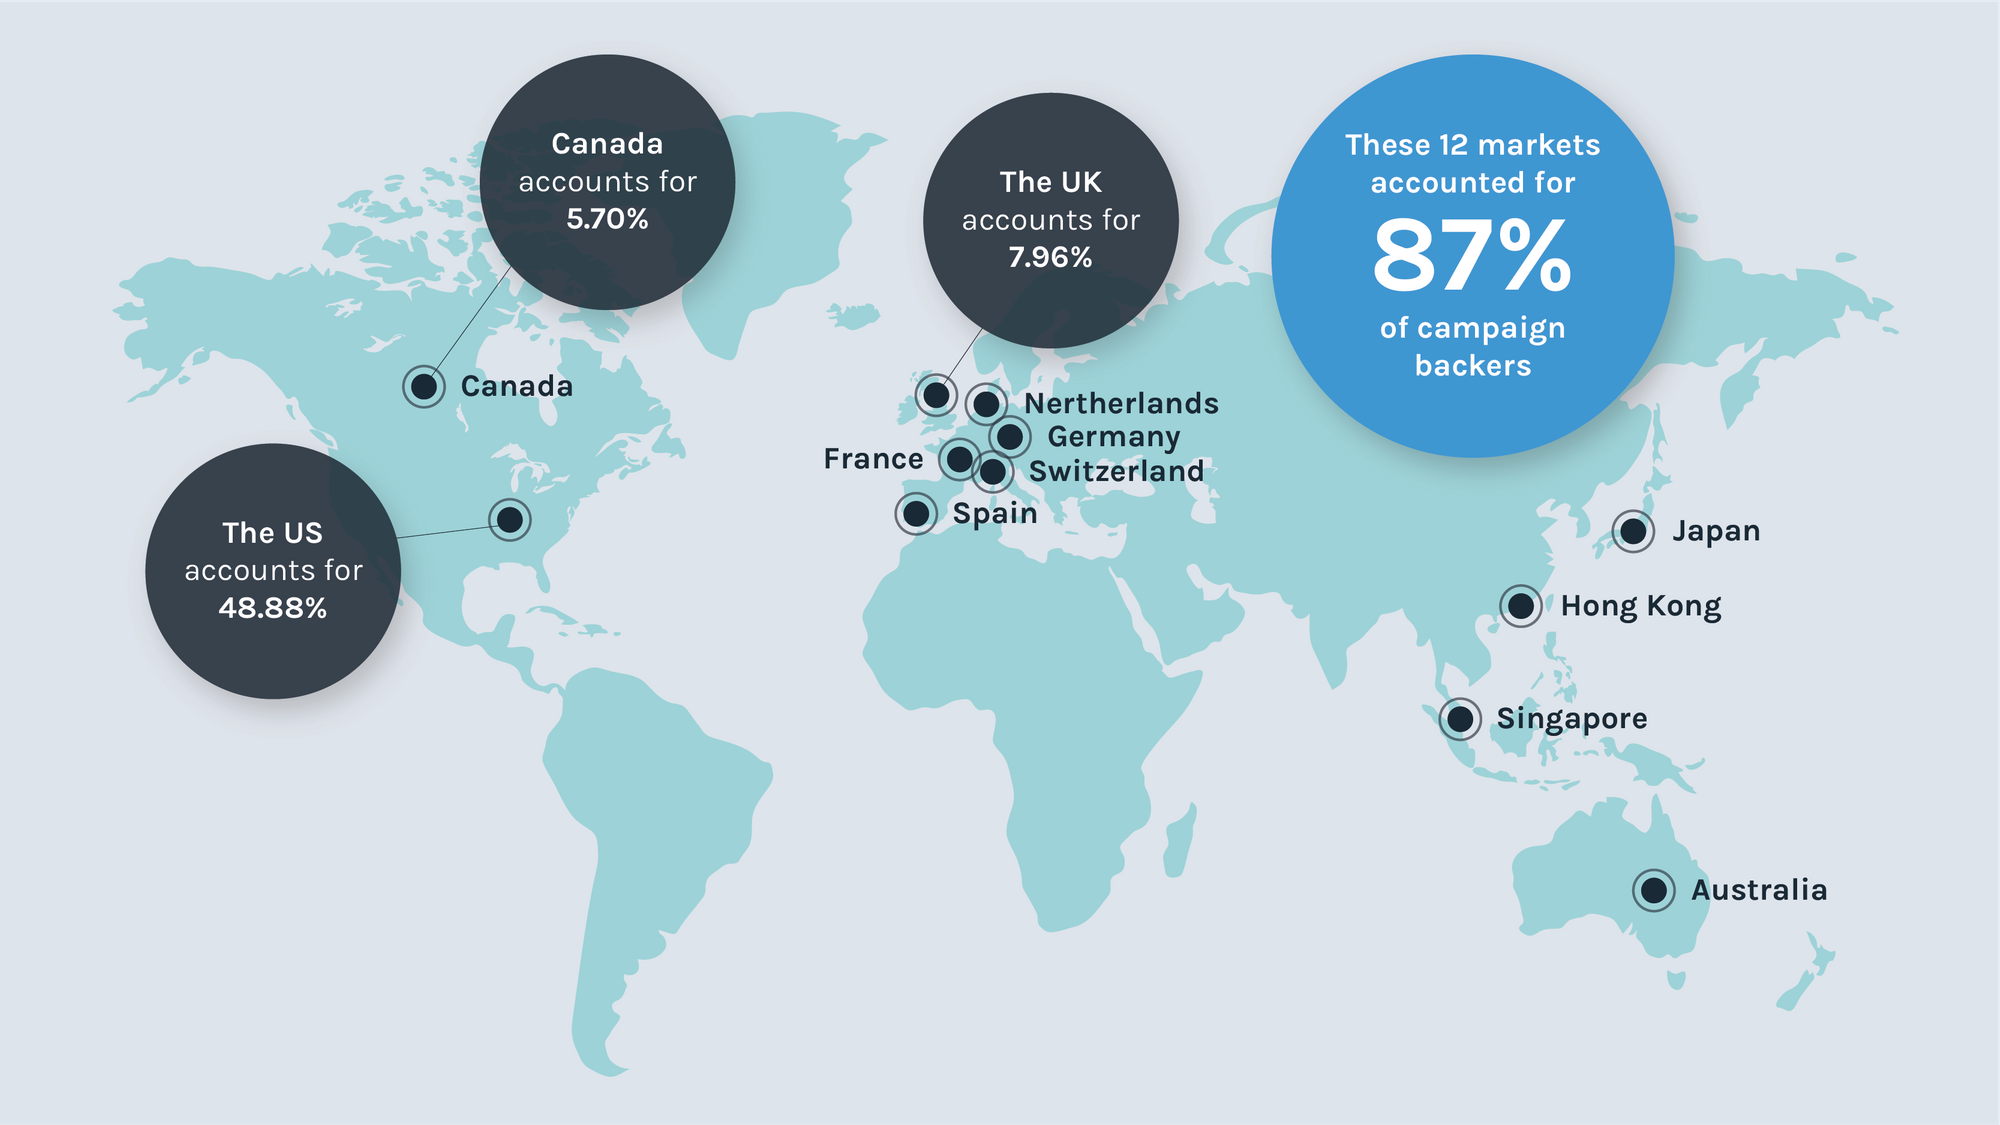 Top locations for crowdfunding backers